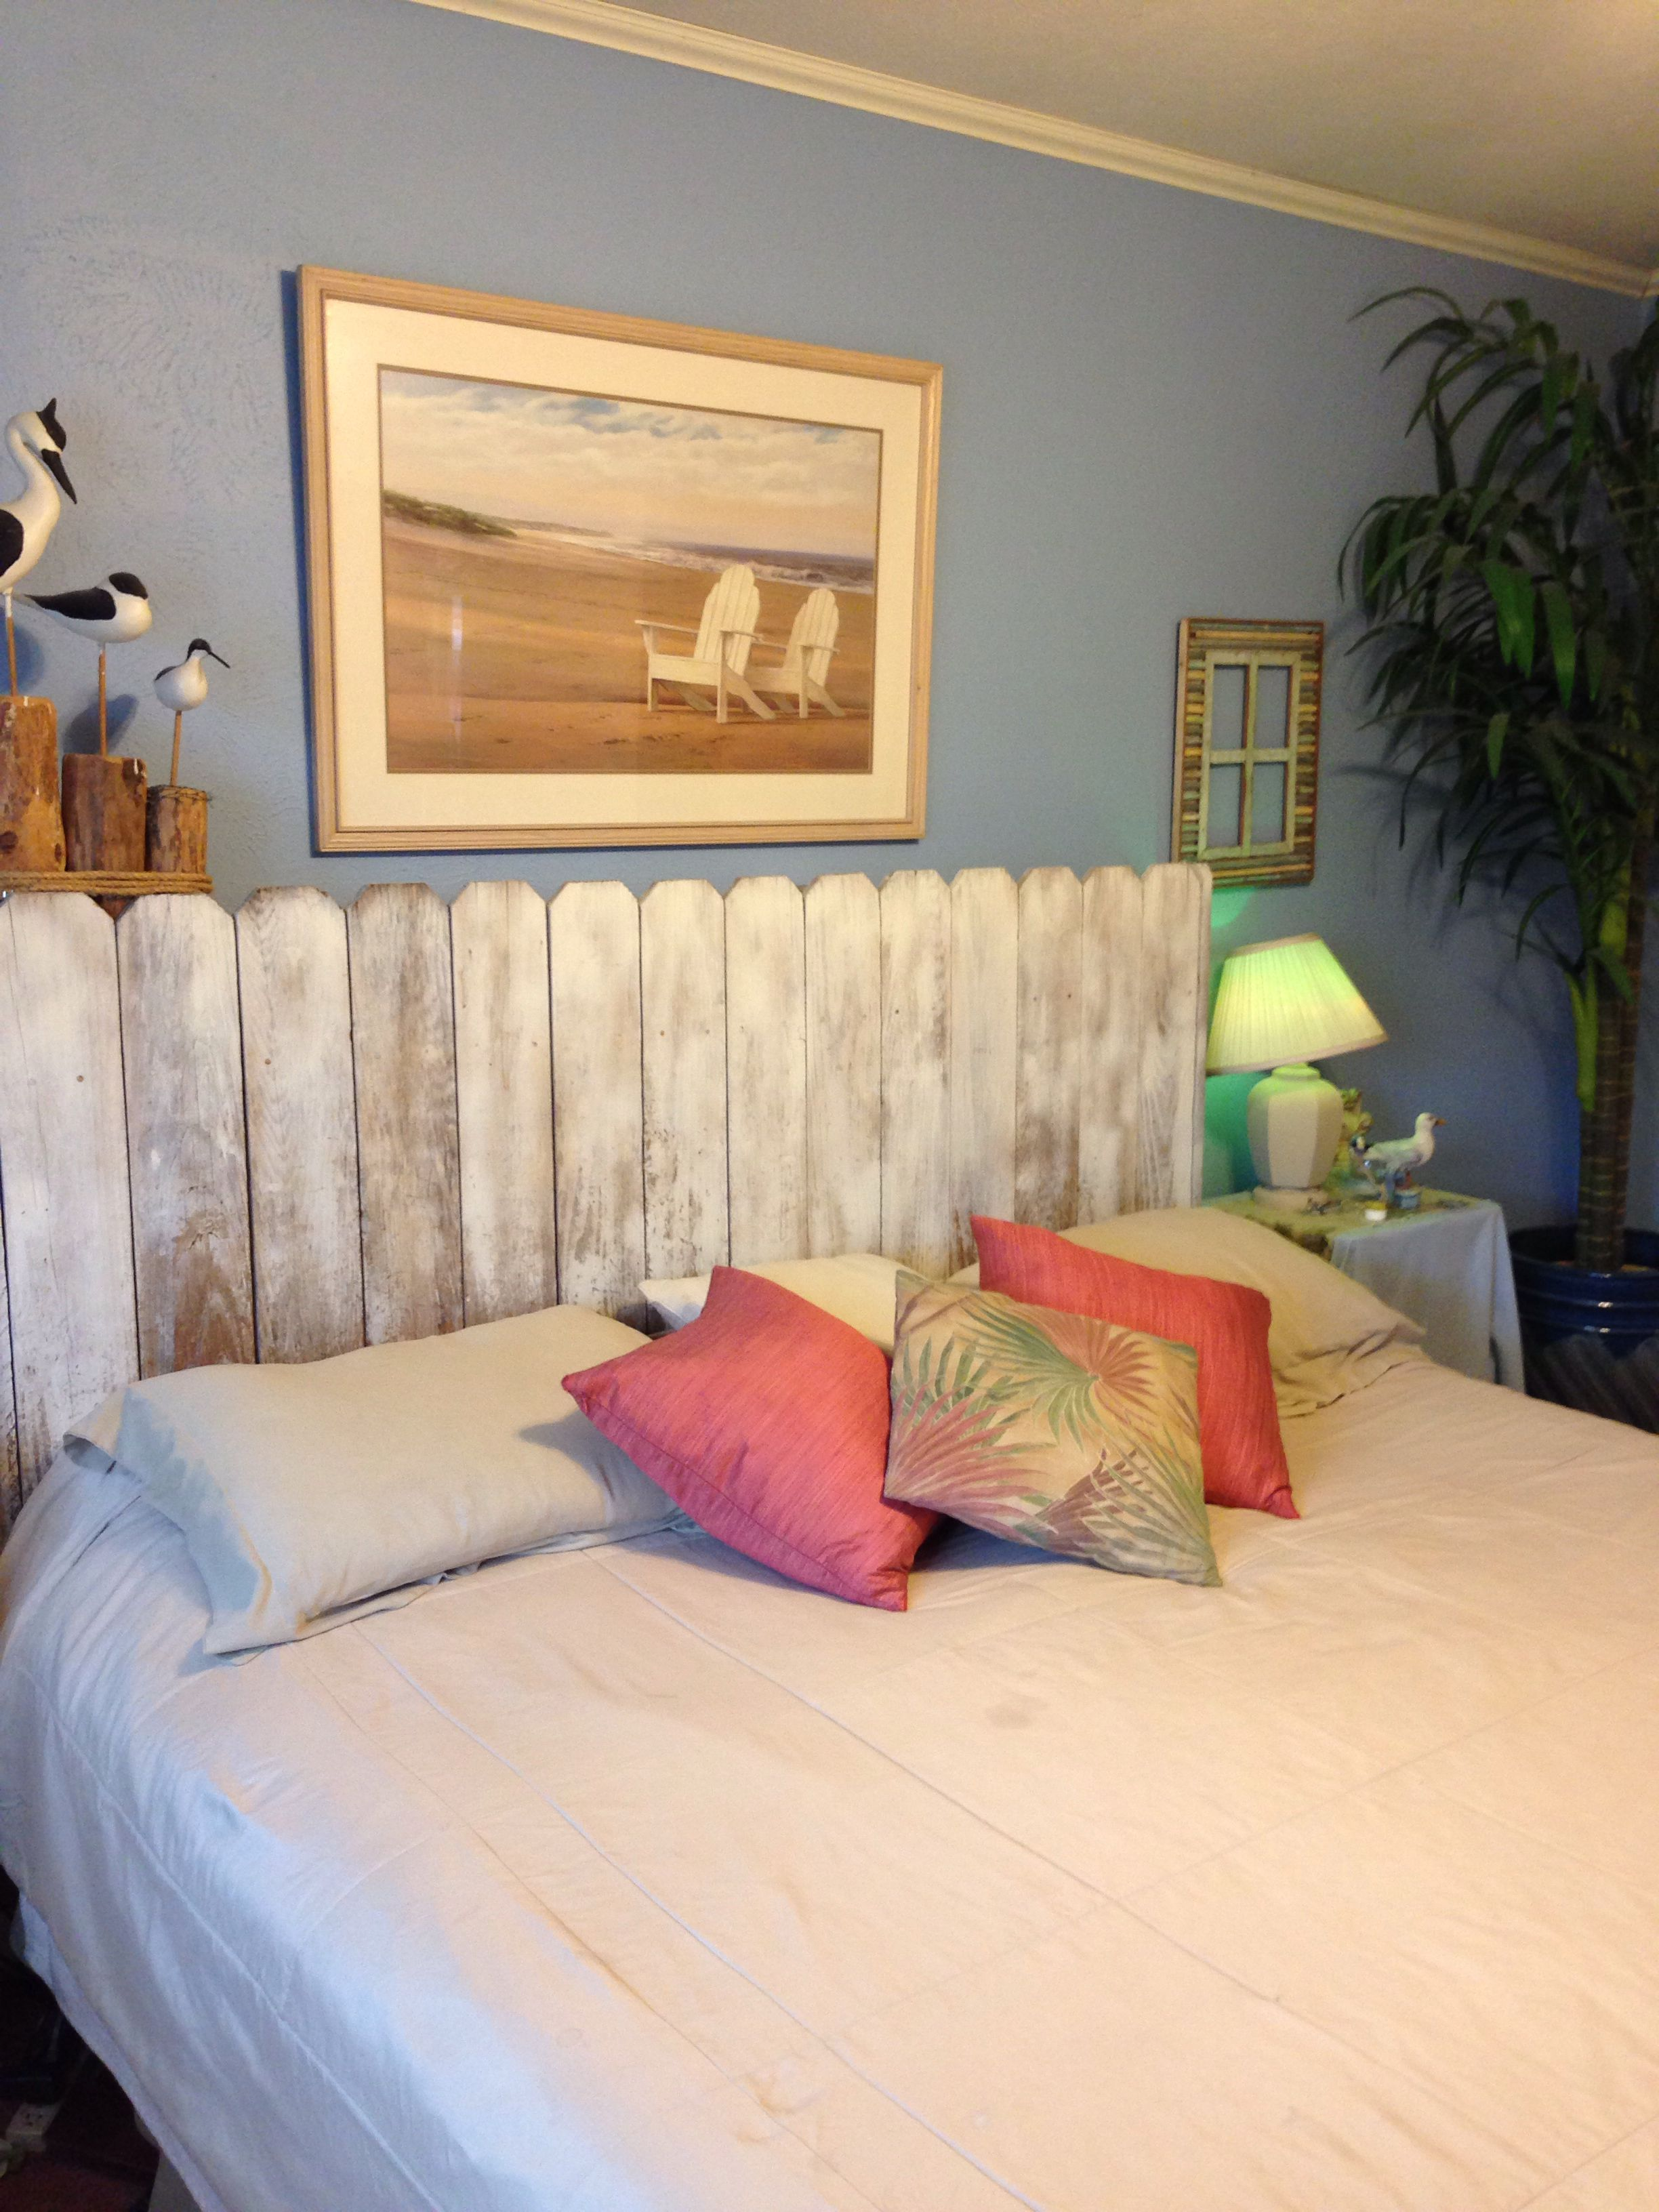 Diy headboard made out of whitewashed fence boards